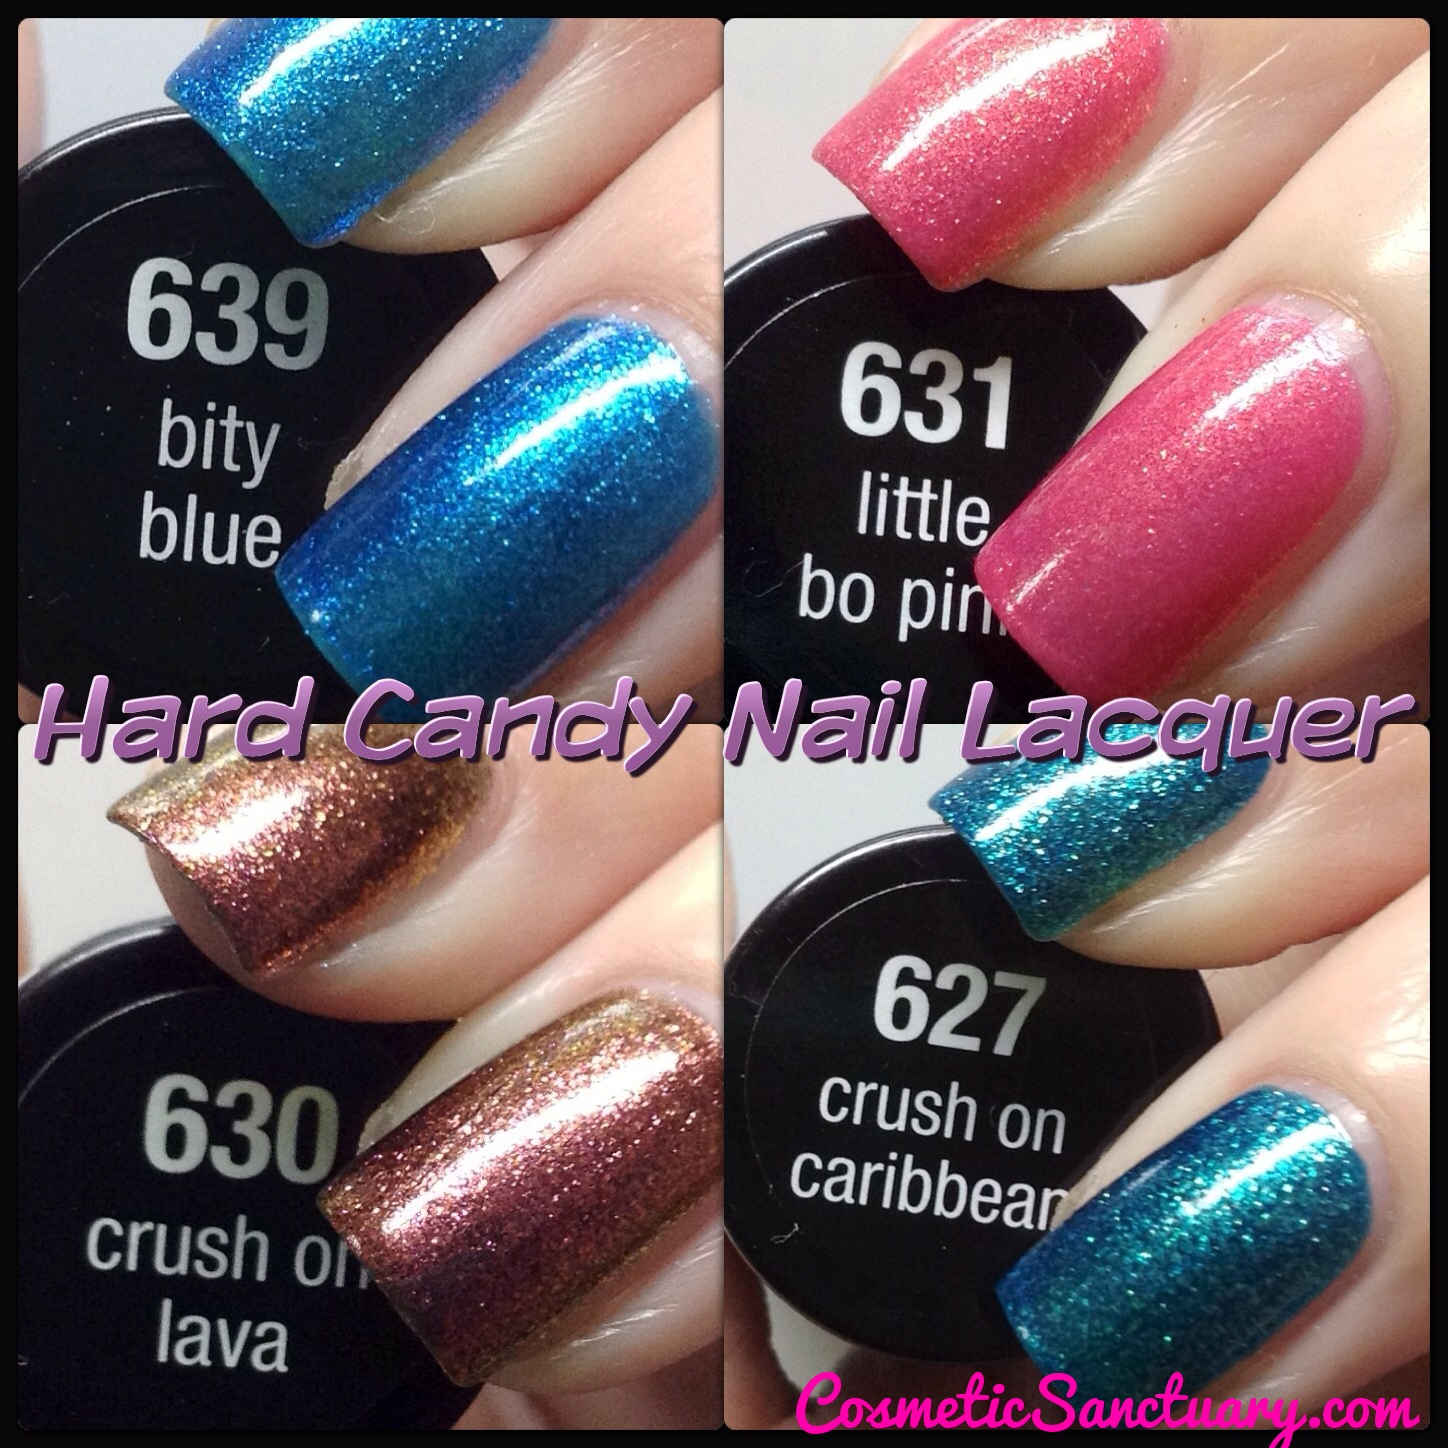 a8ffa6514d Hard Candy Nail Lacquer Swatches and Review